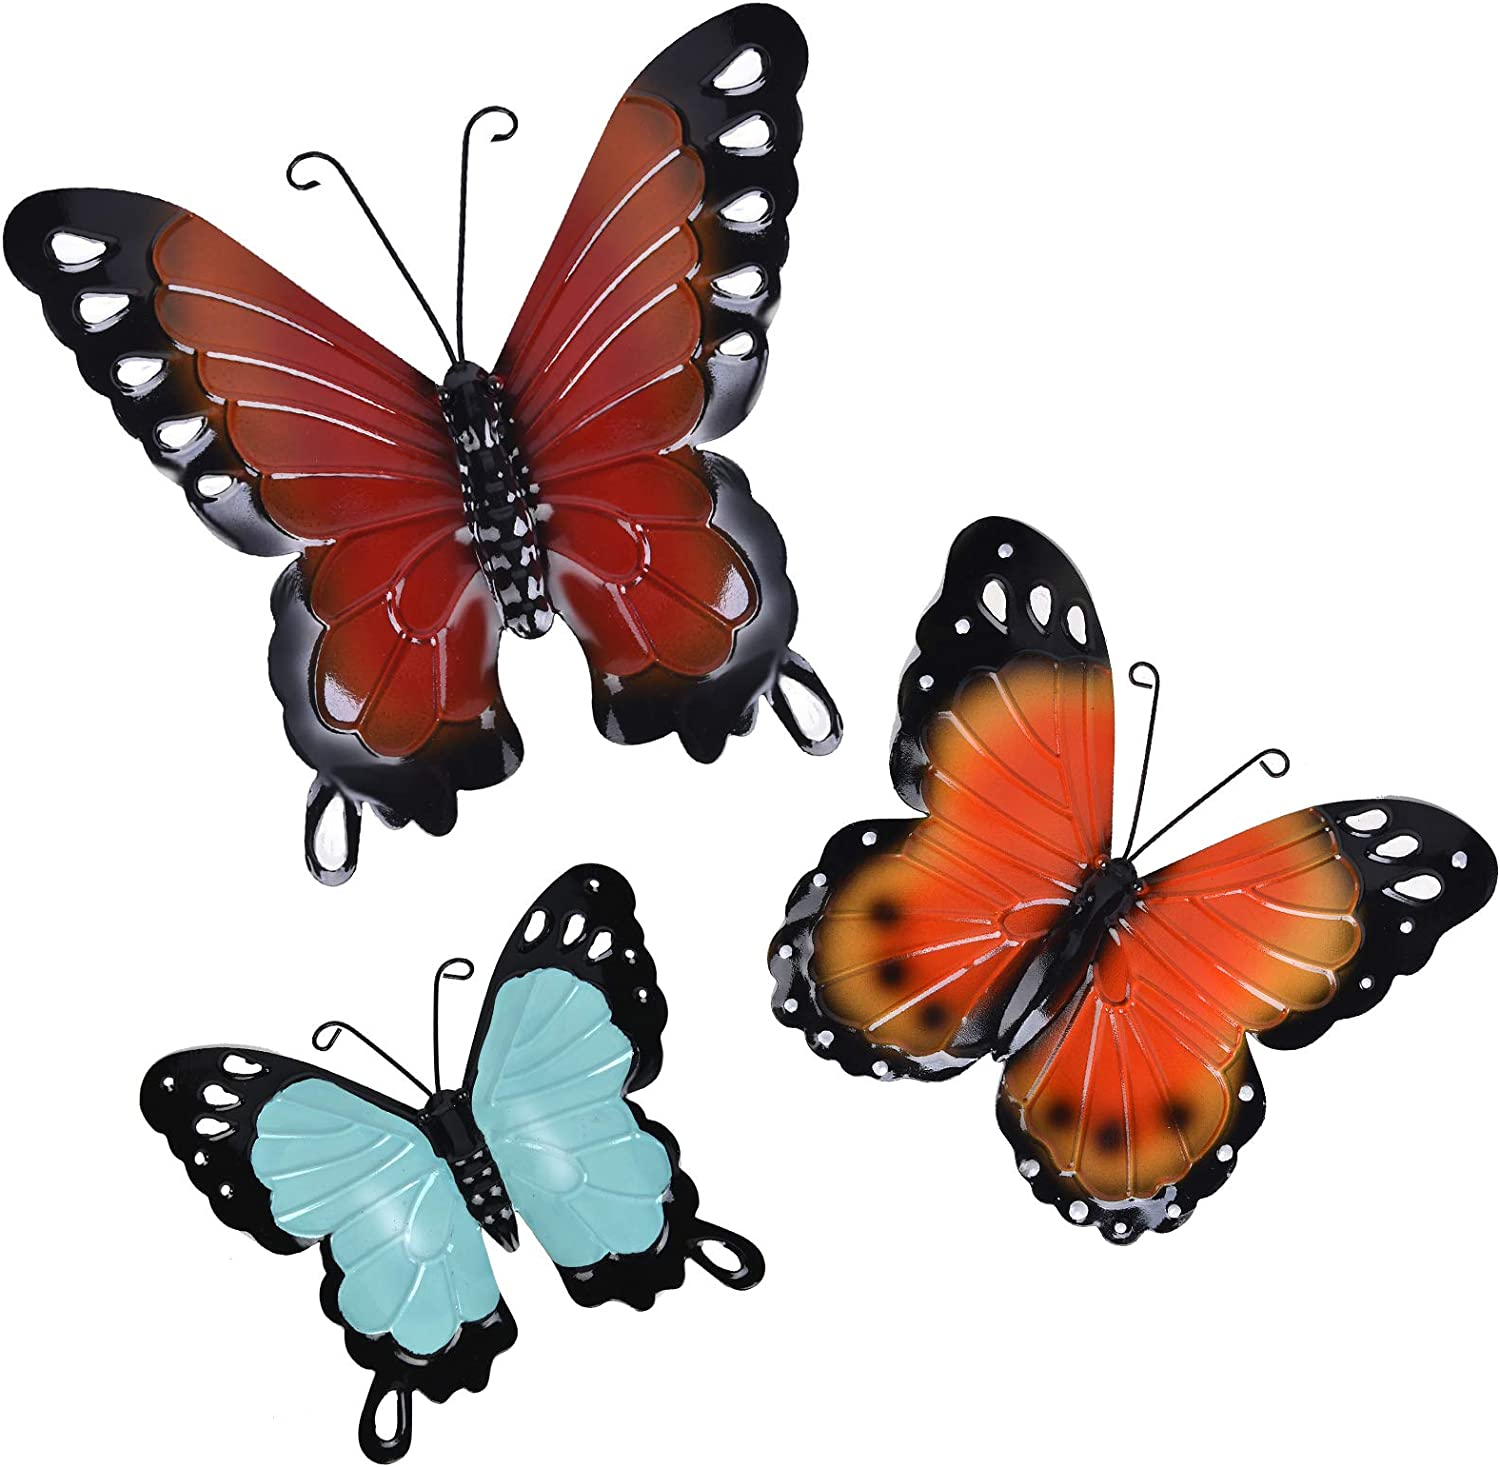 Metal Butterfly Wall Decor Butterfly Wall Art Hanging Sculpture For Indoor Outdoor Home Bathroom Living Room Bedroom Or Porch Patio Fence Yellow Red Blue Set Of 3